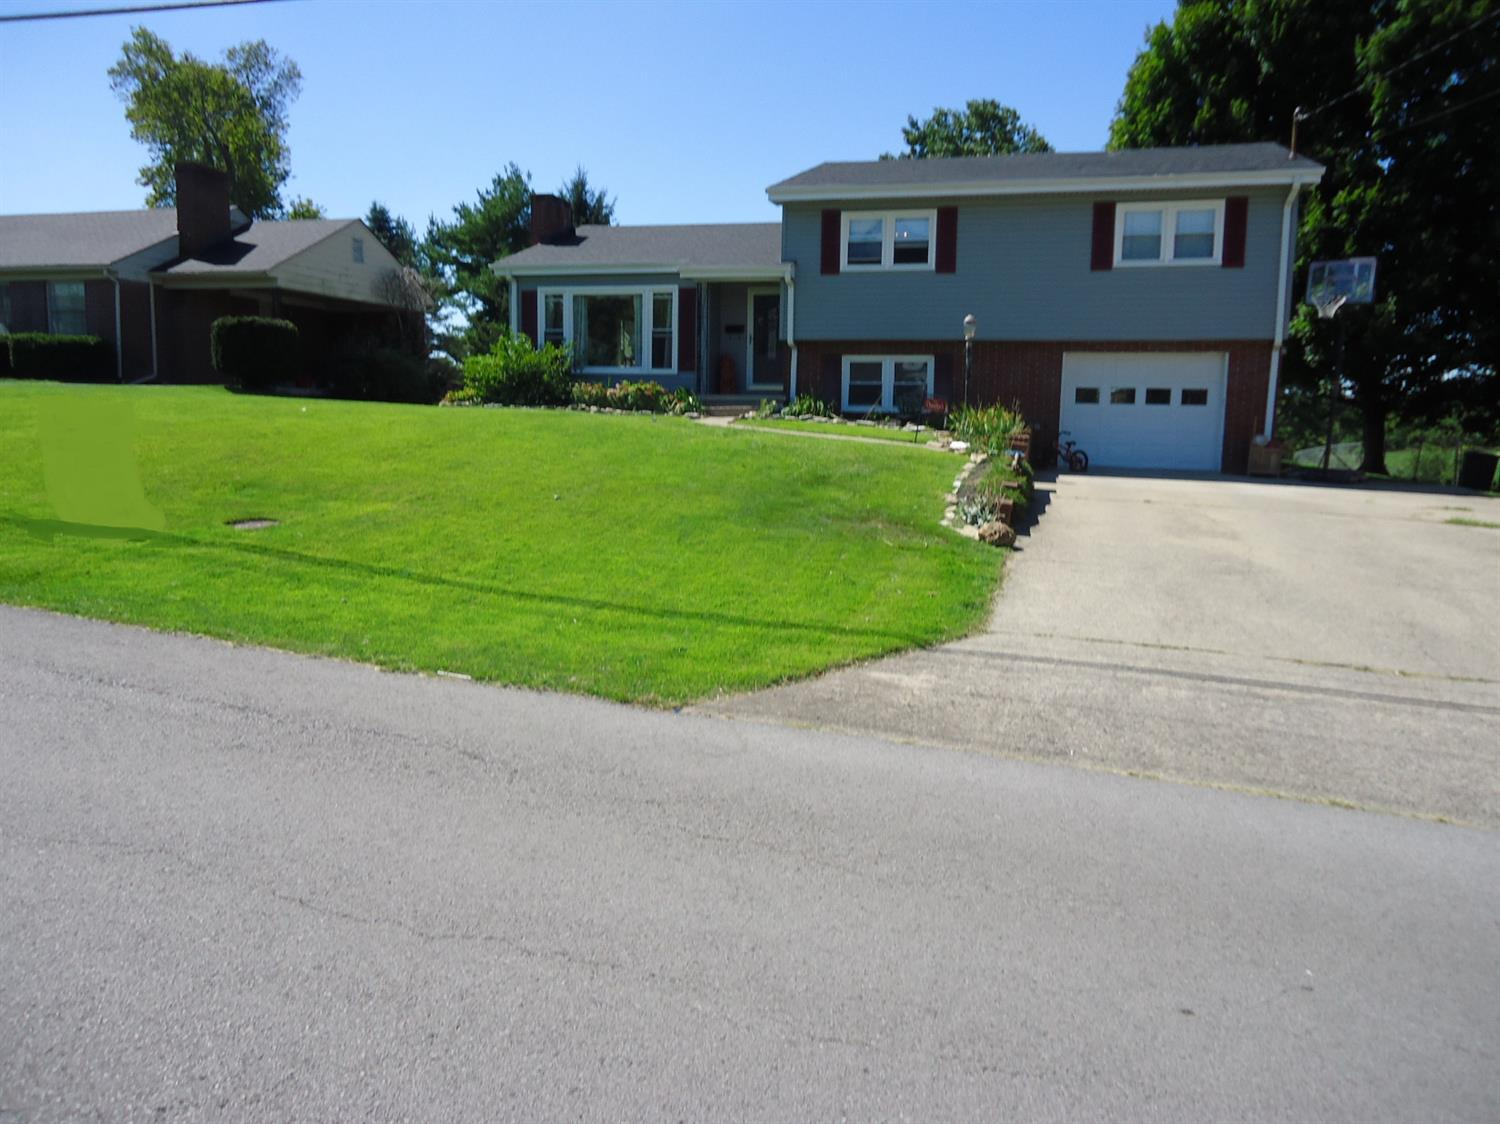 Home For Sale at 225 Richmond St, Lancaster, KY 40444